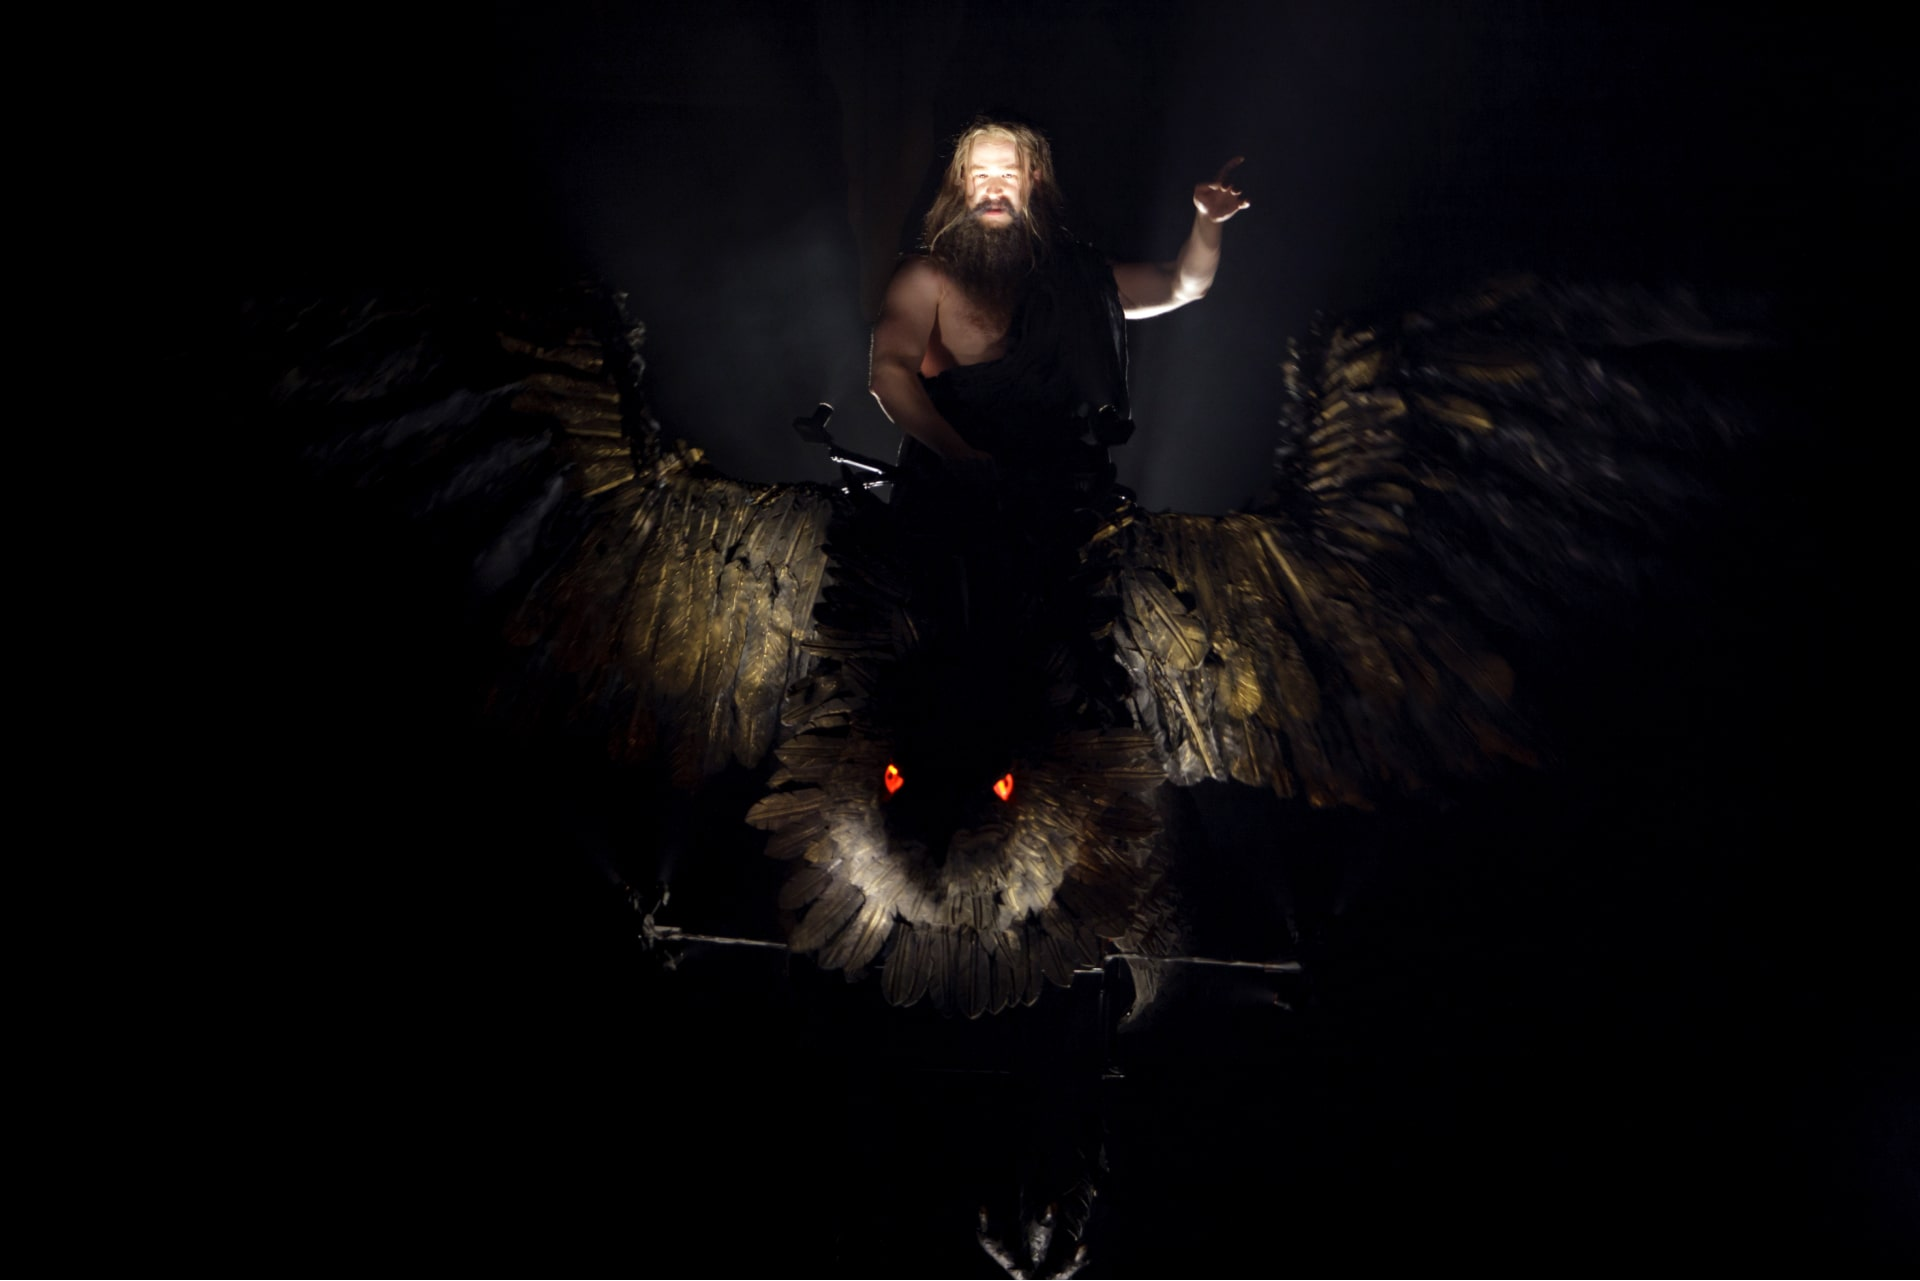 Bearded god rides giant, red-eyed bird in strong shaft of light.